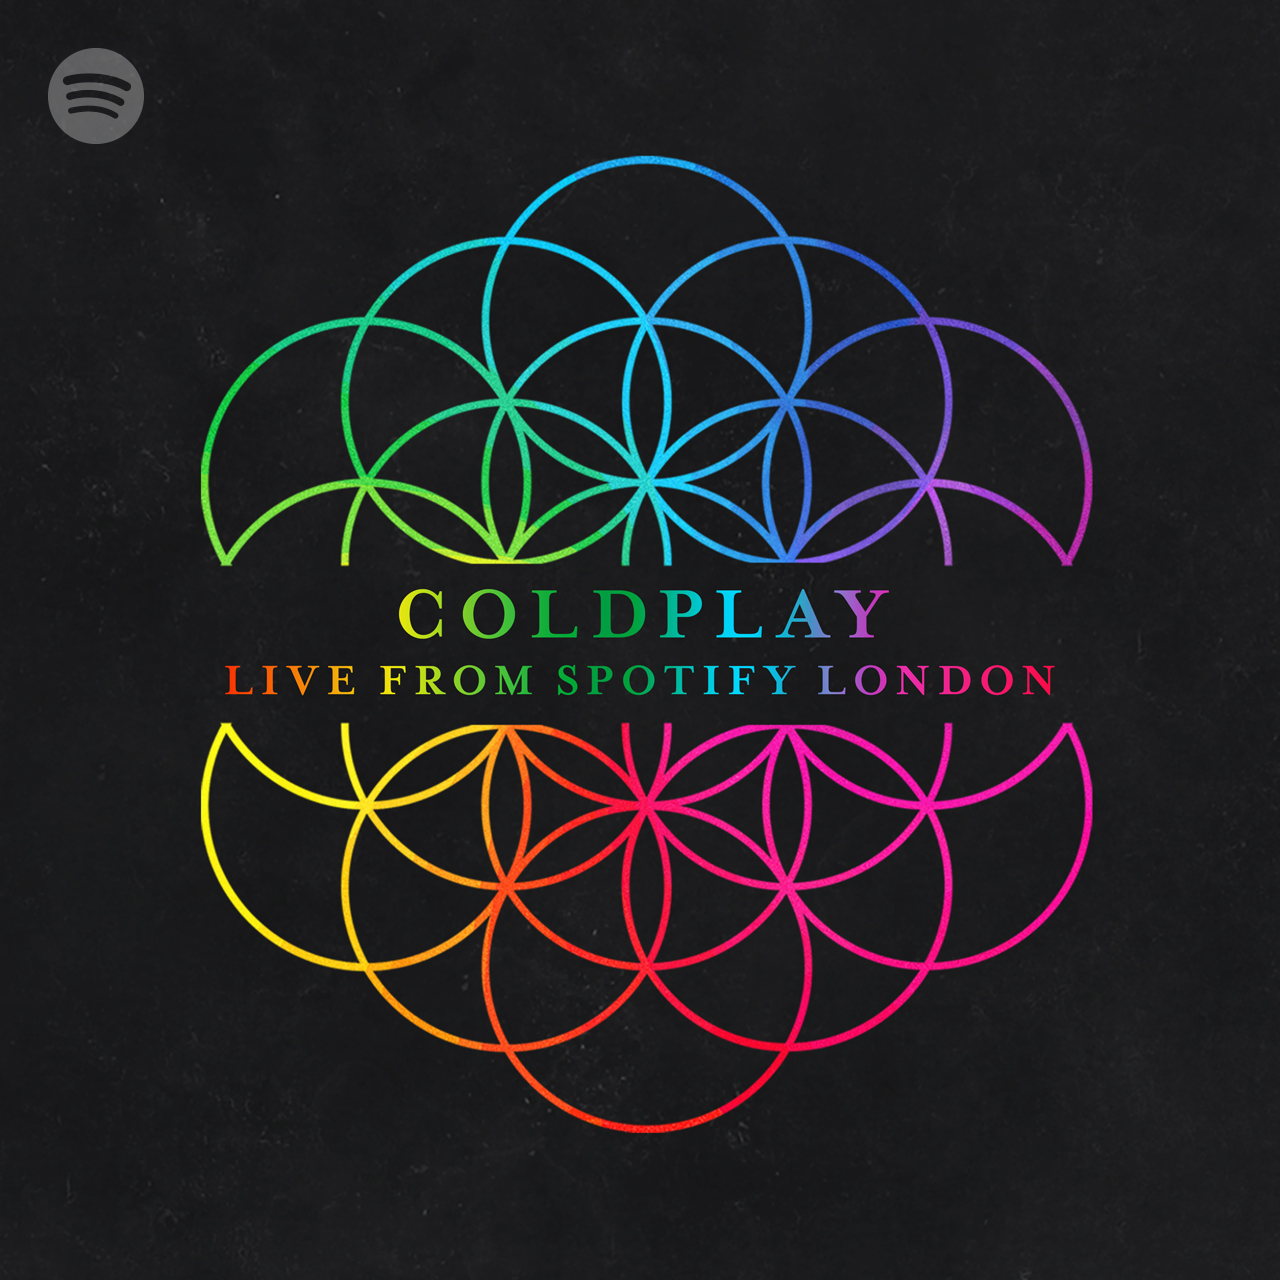 coldplay album 2017 mp3 free download